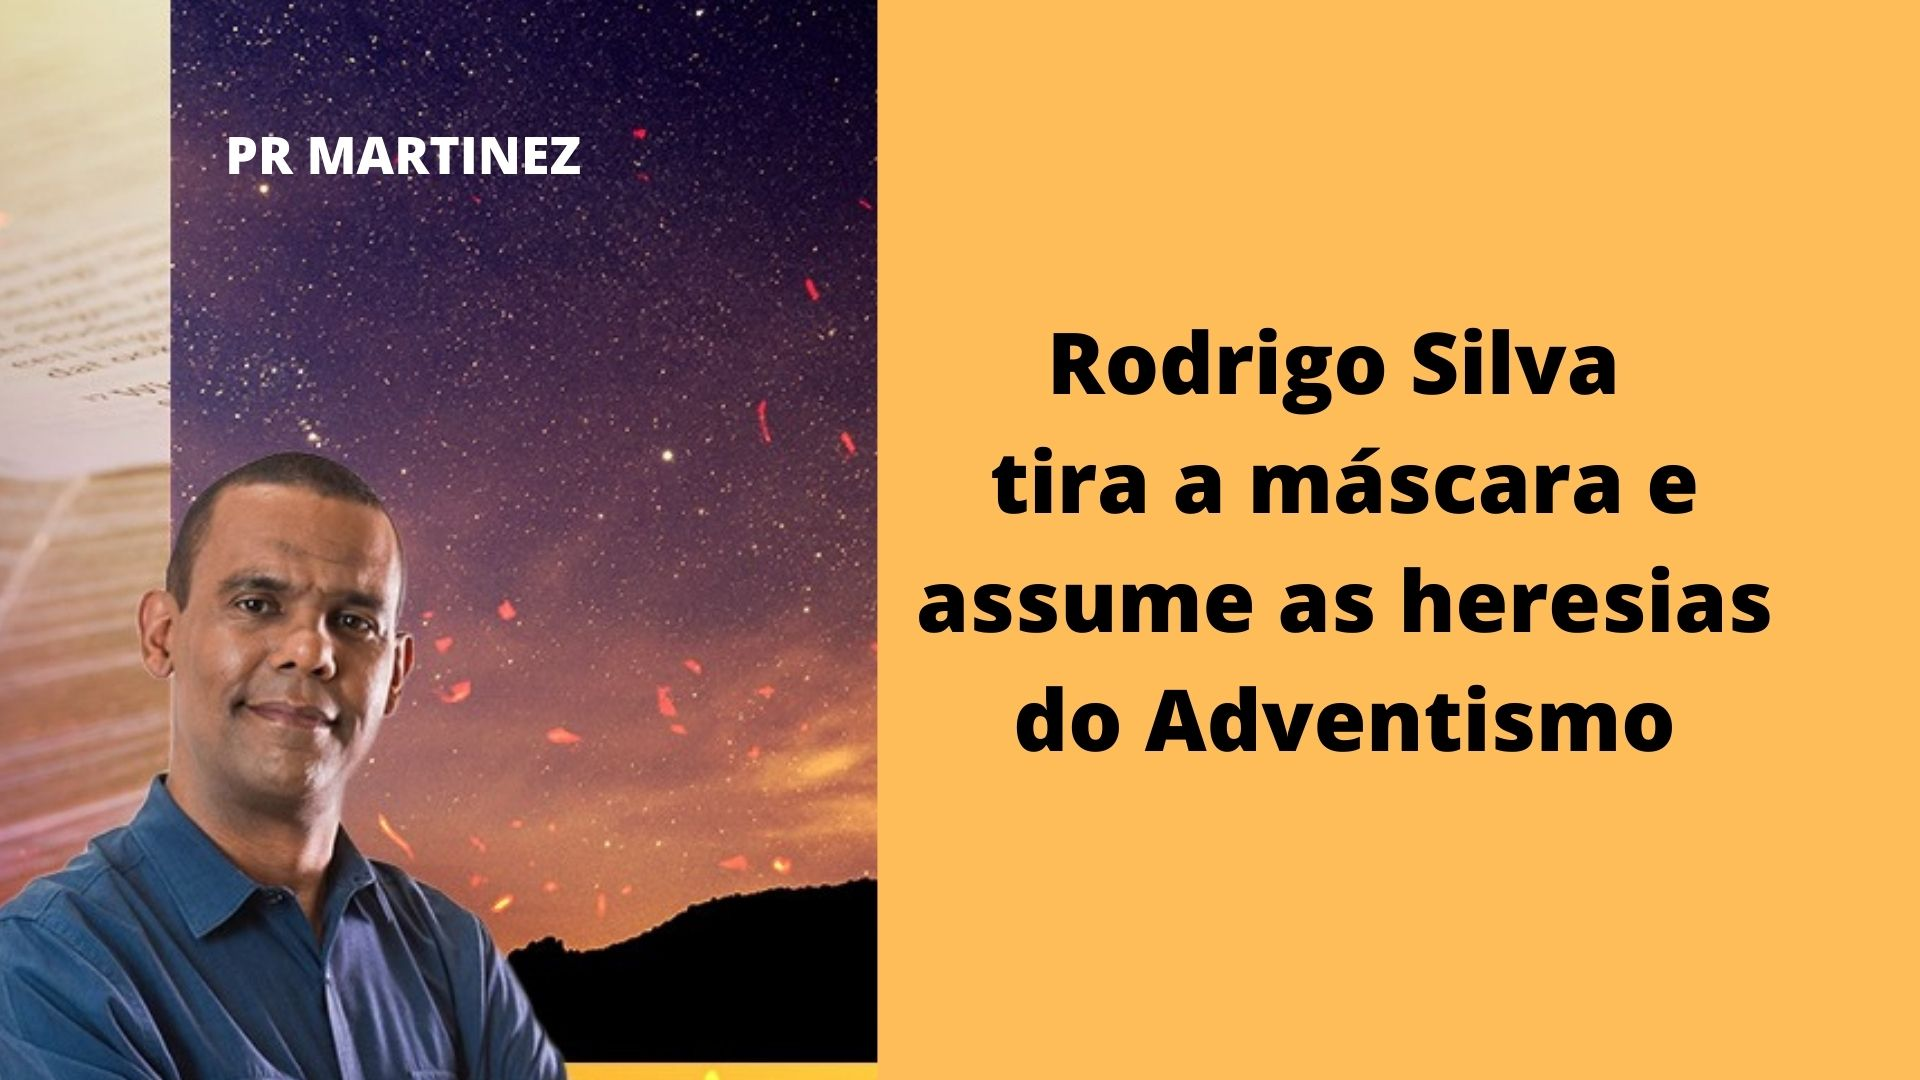 Rodrigo Silva tira a máscara e assume o Adventismo